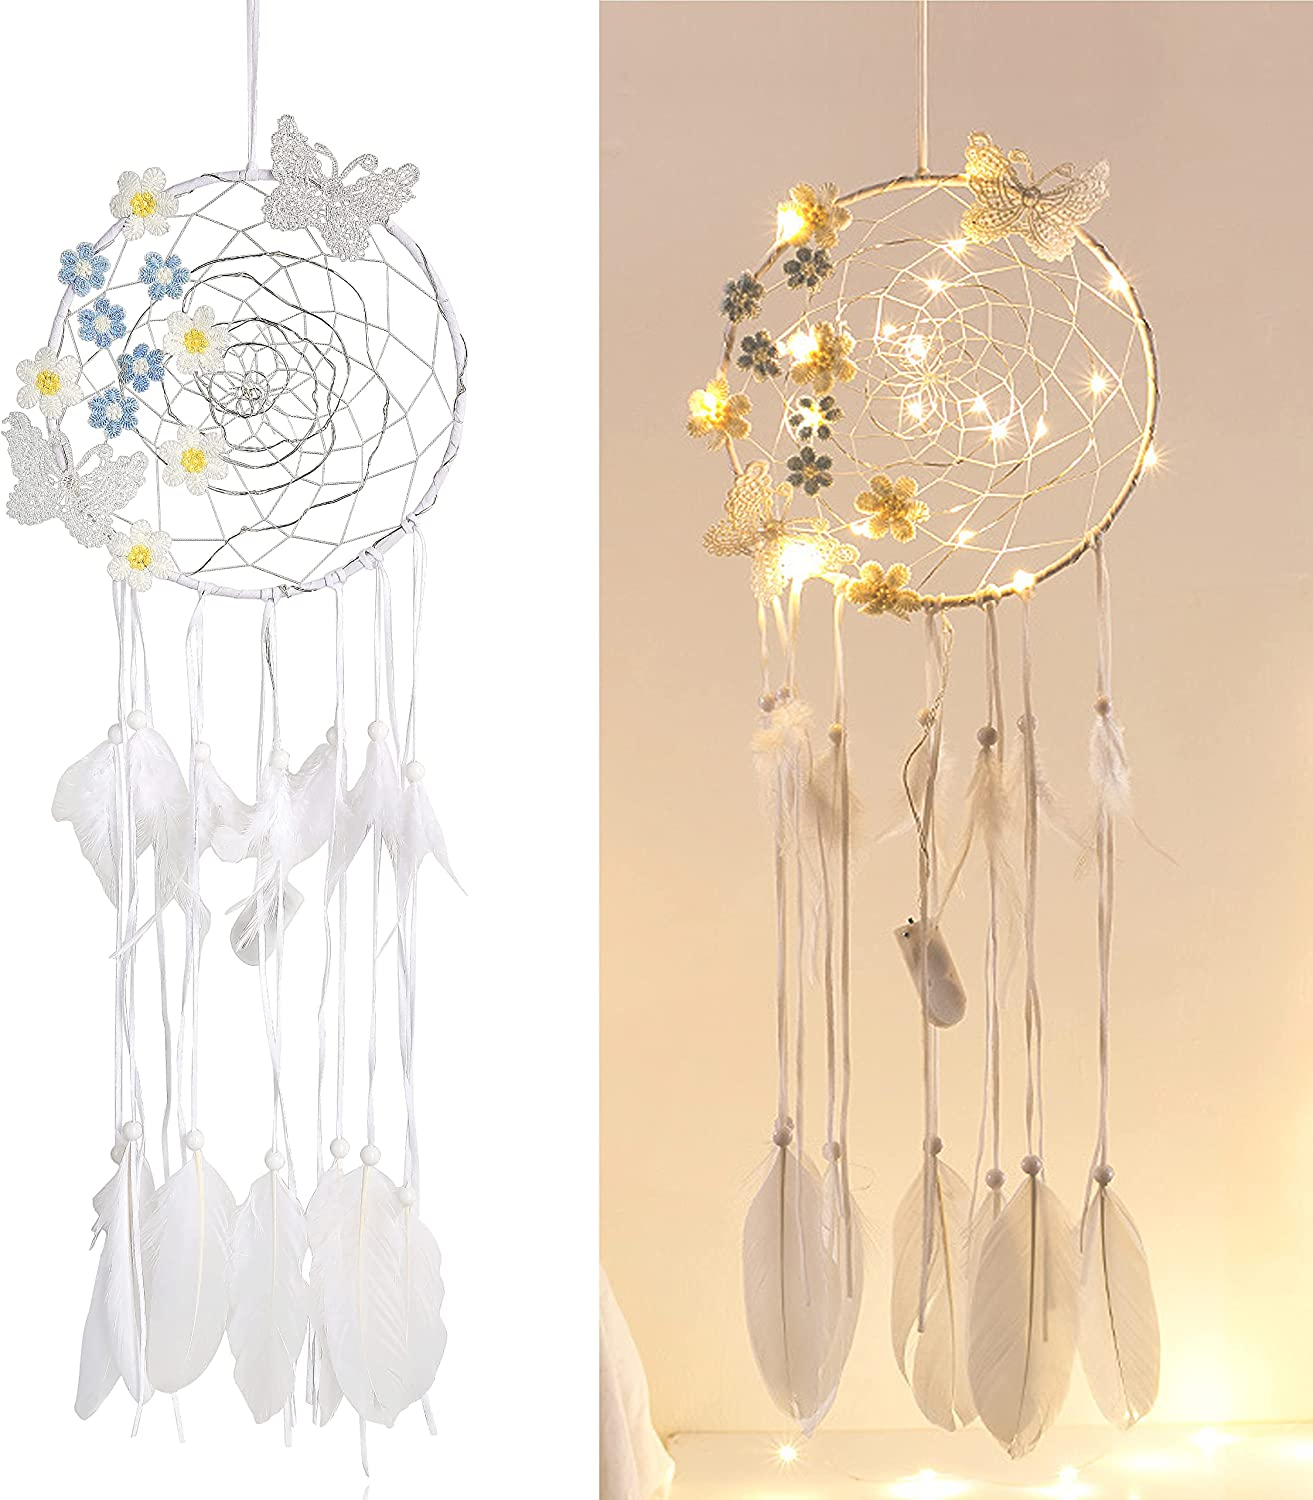 DUQGUHO Butterfly Flower Dream Catcher Wall Hanging Ornament Decor for Girl Bedroom Baby Room LED Lights Handmade White Feather Dreamcatcher Home Decoration